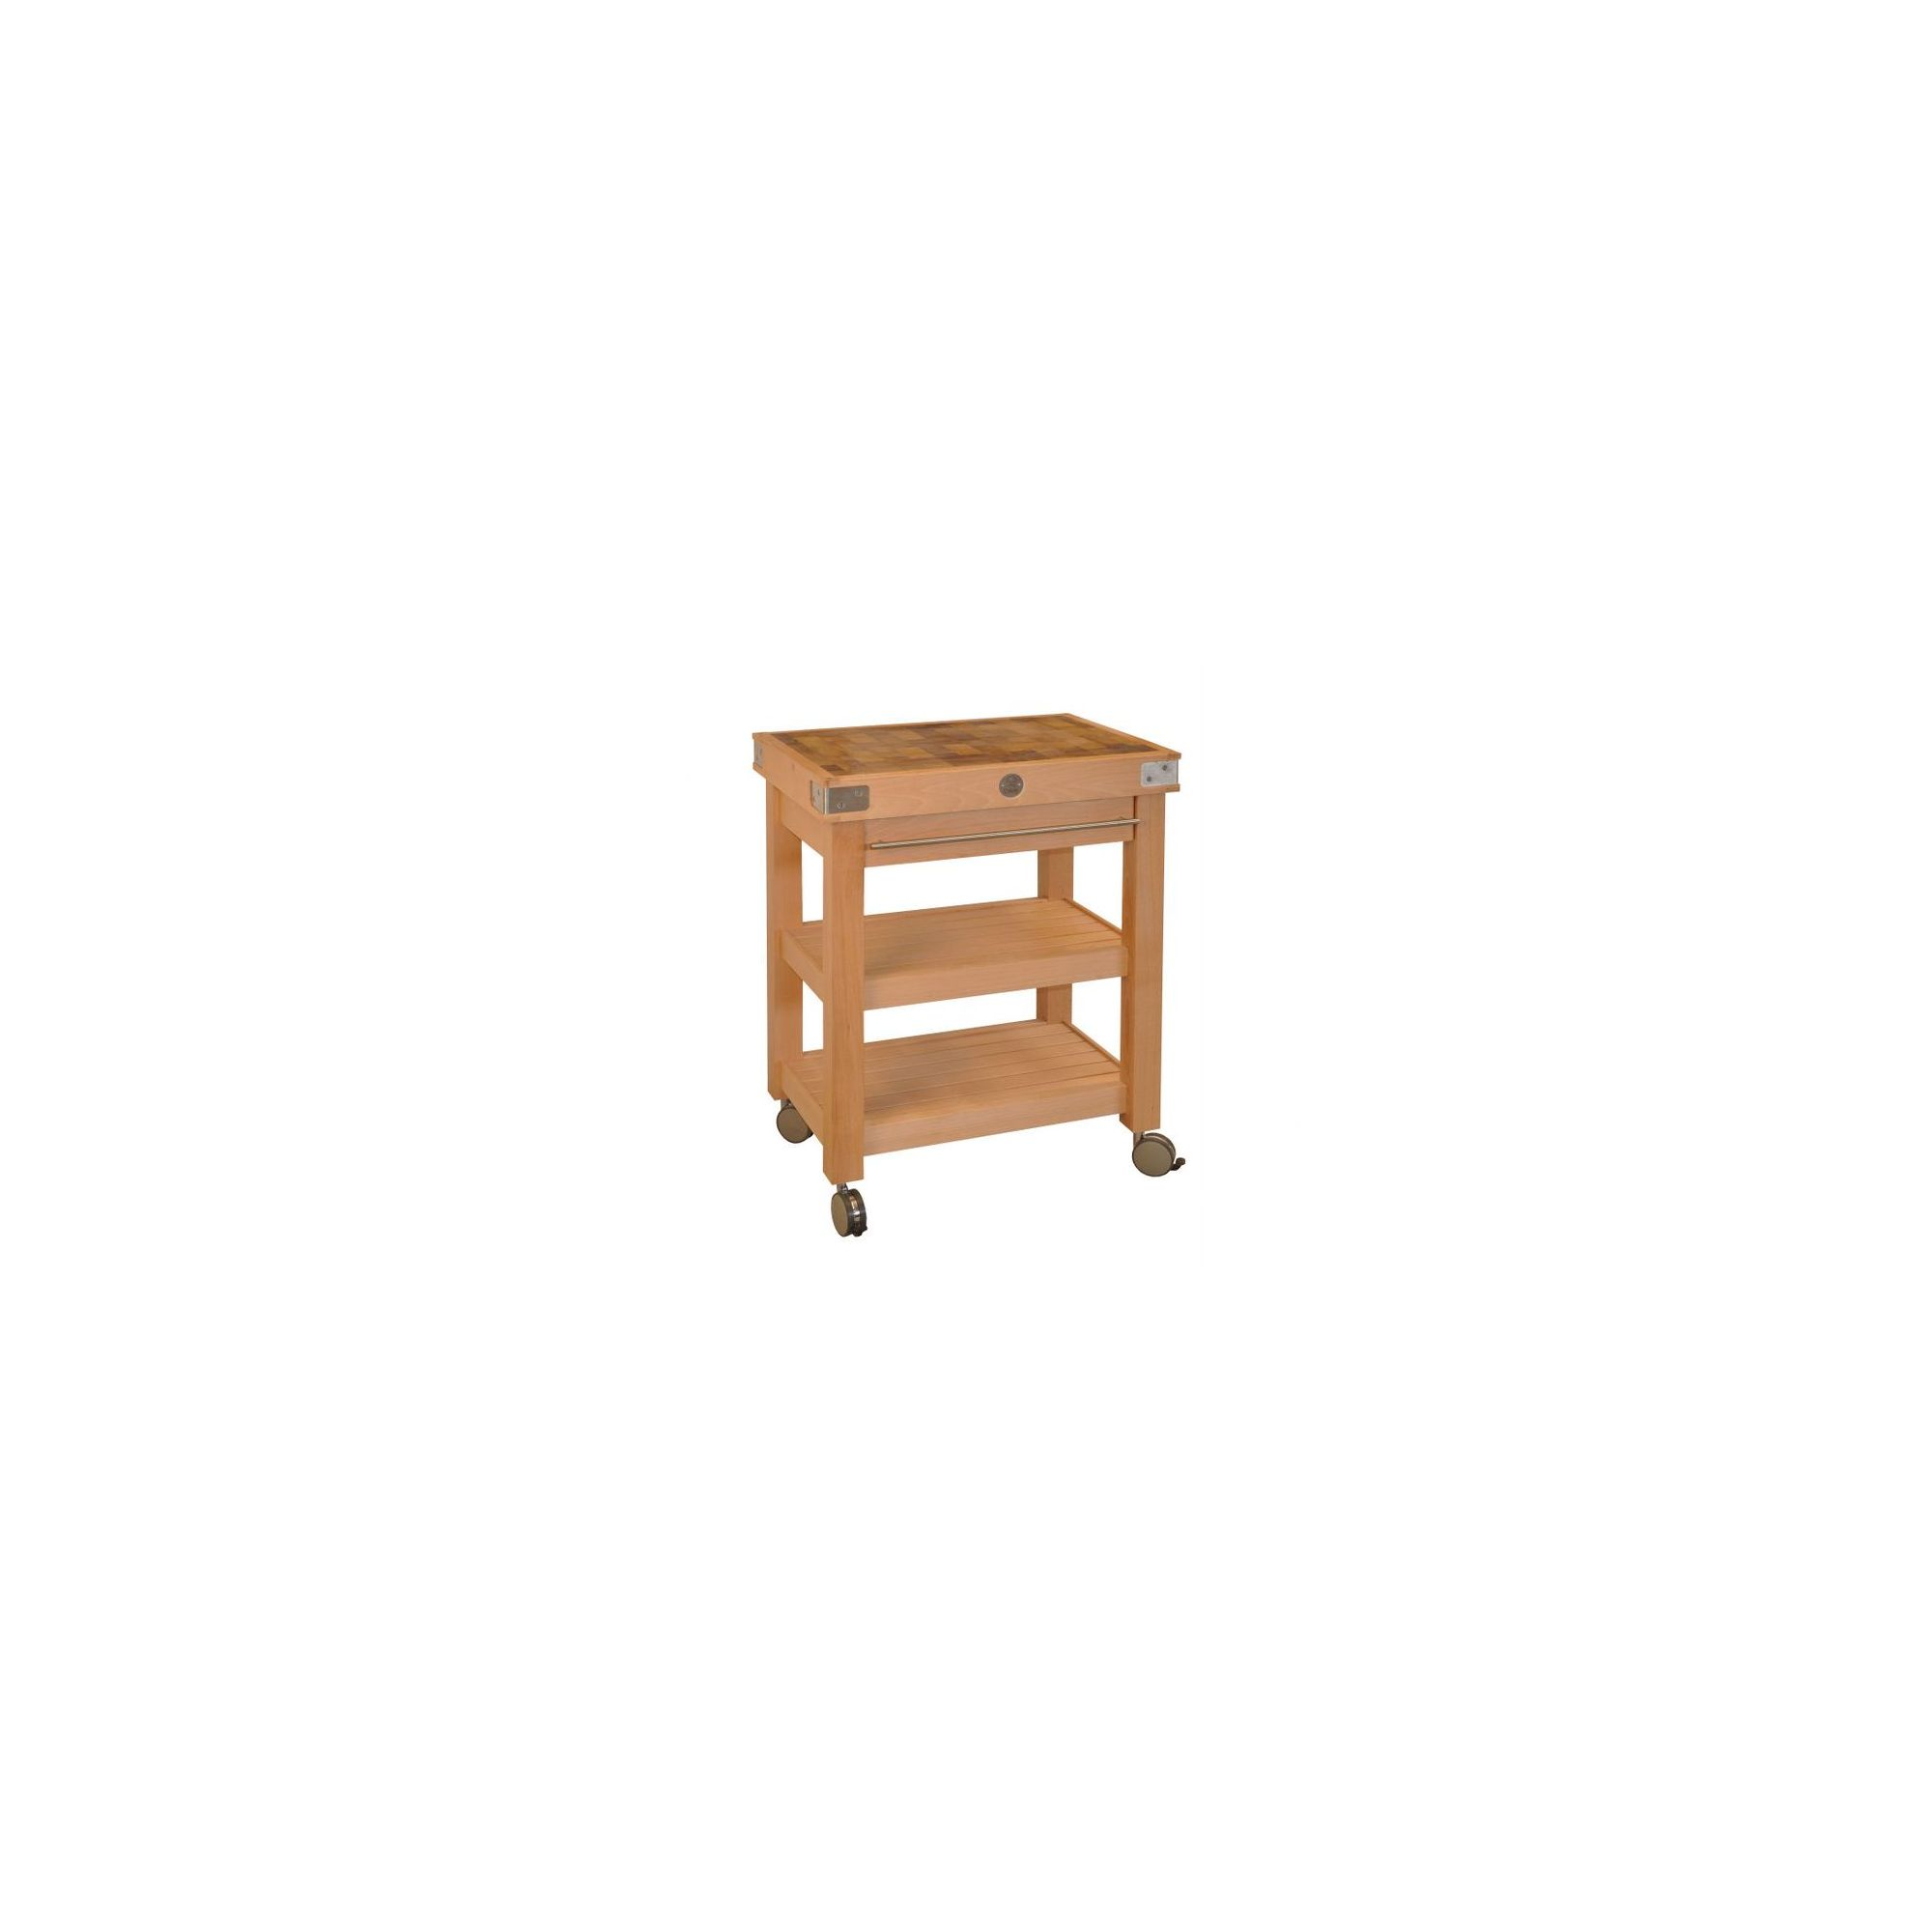 Chabret Double Stages Kitchen Cart - 90cm X 60cm X 50cm at Tesco Direct